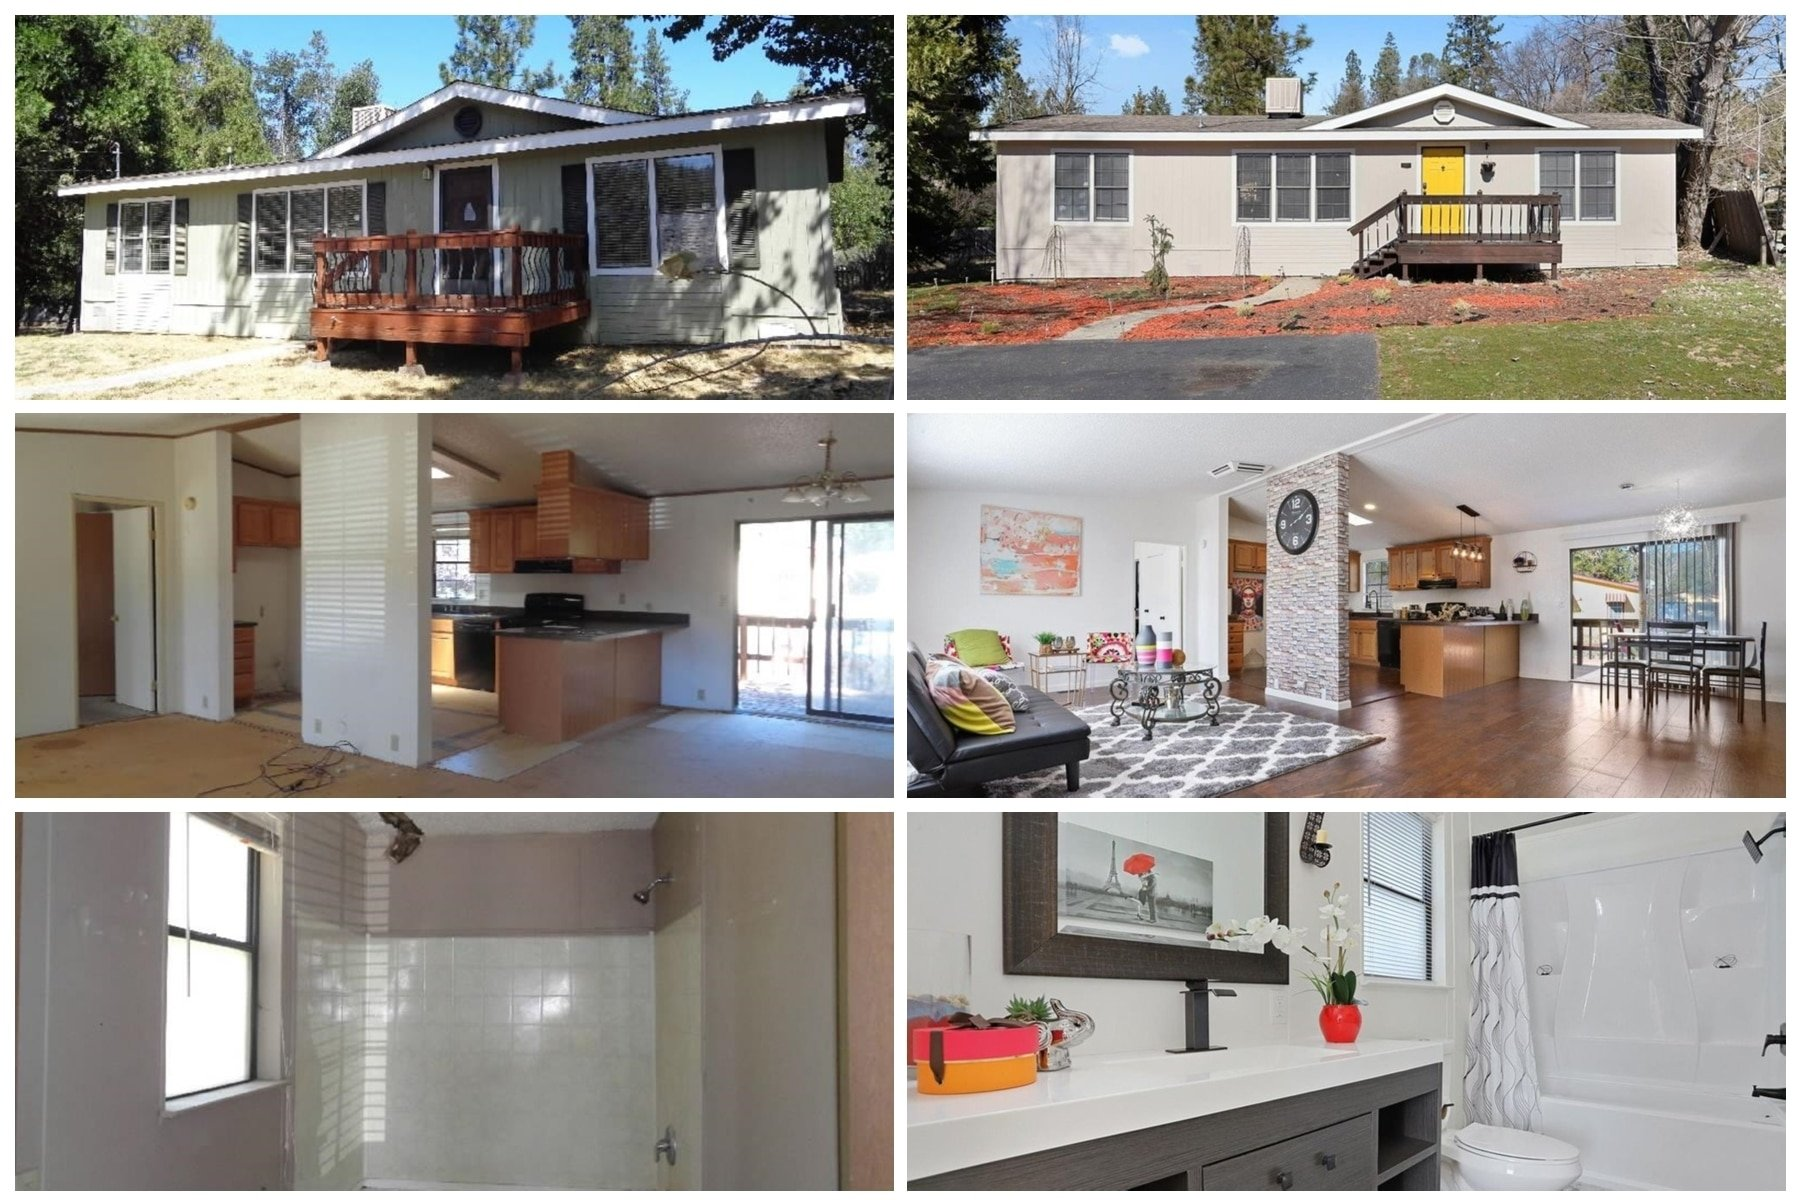 Before & After photos of a manufactured house flip.